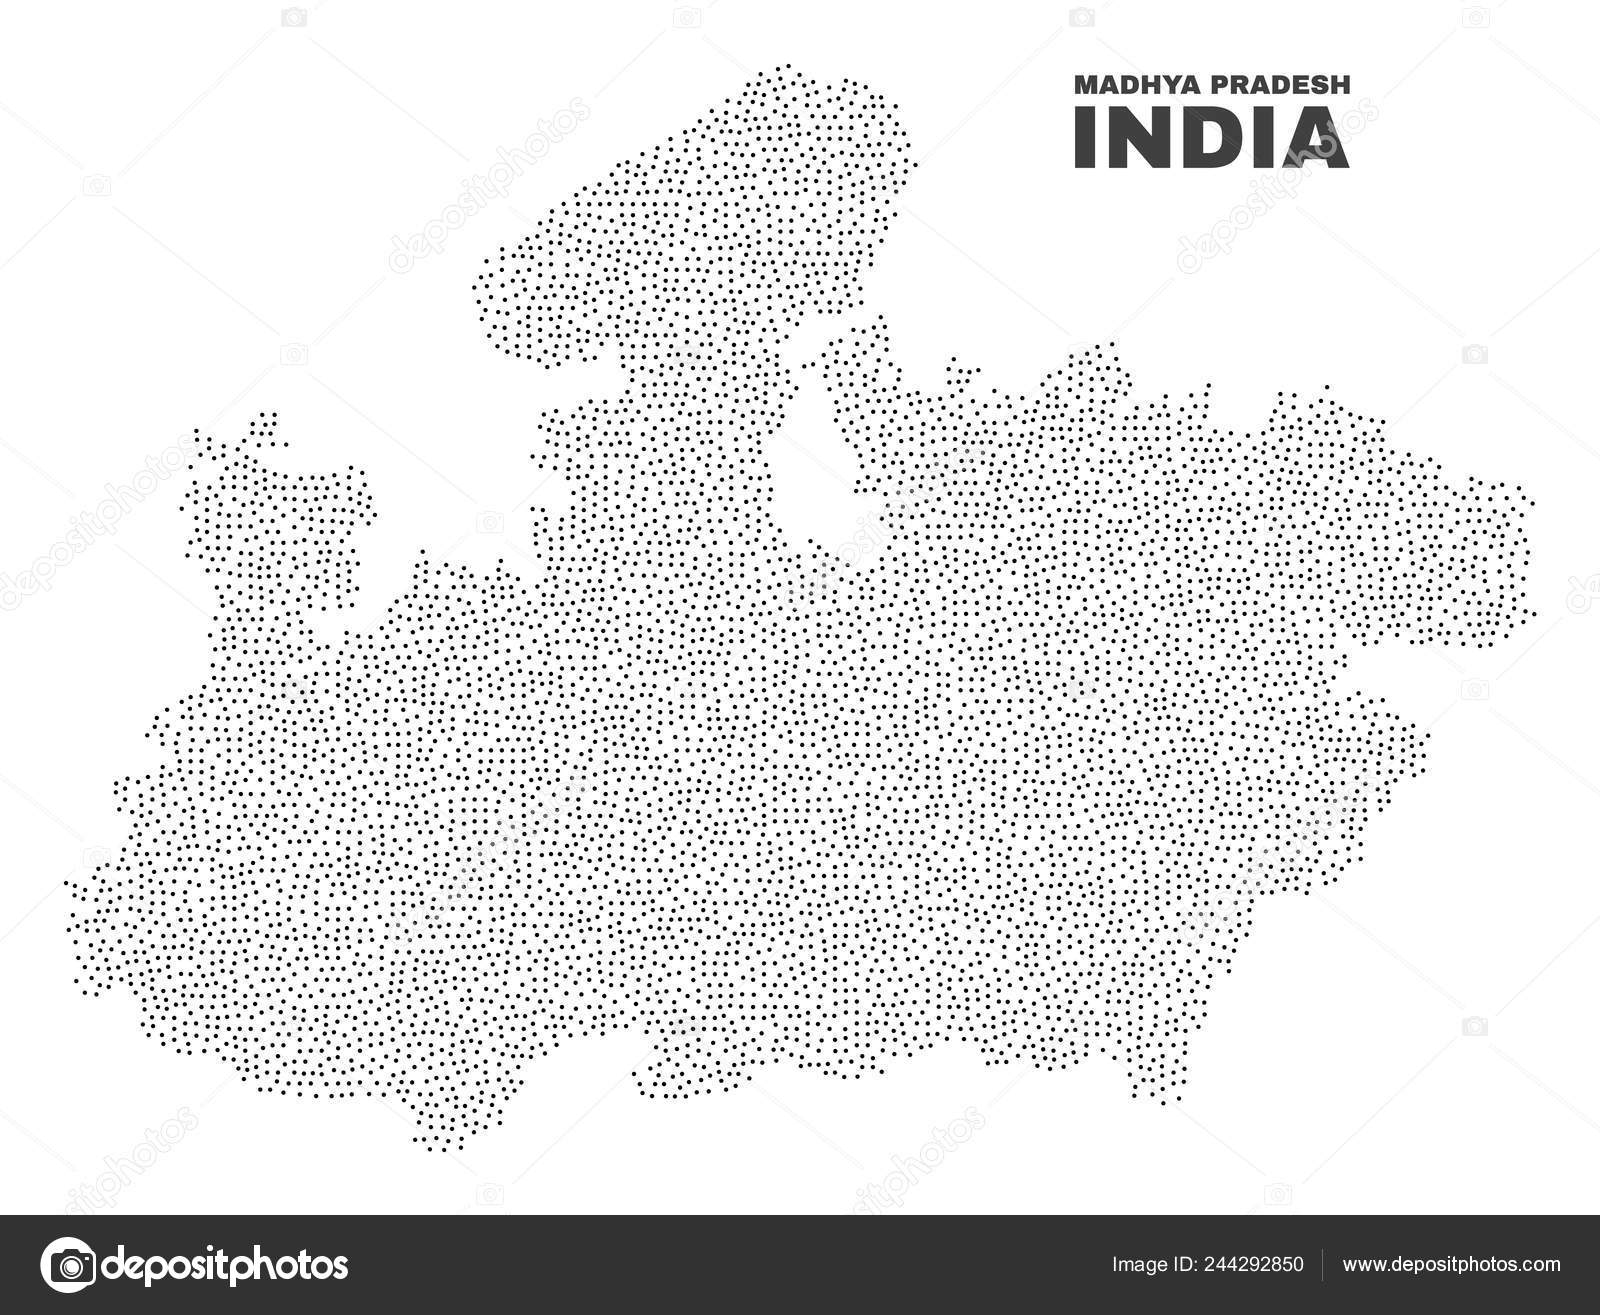 Vector Madhya Pradesh State Map of Dots — Stock Vector ... on jharkhand state map, gujarat state map, orissa state map, bihar state map, haryana state map, chhattisgarh state map, kerala state map, assam state map, tamil nadu state map, telangana state map, bengal state map, maharashtra state map, karnataka state map, punjab state map, uttaranchal state map, andhra state map,